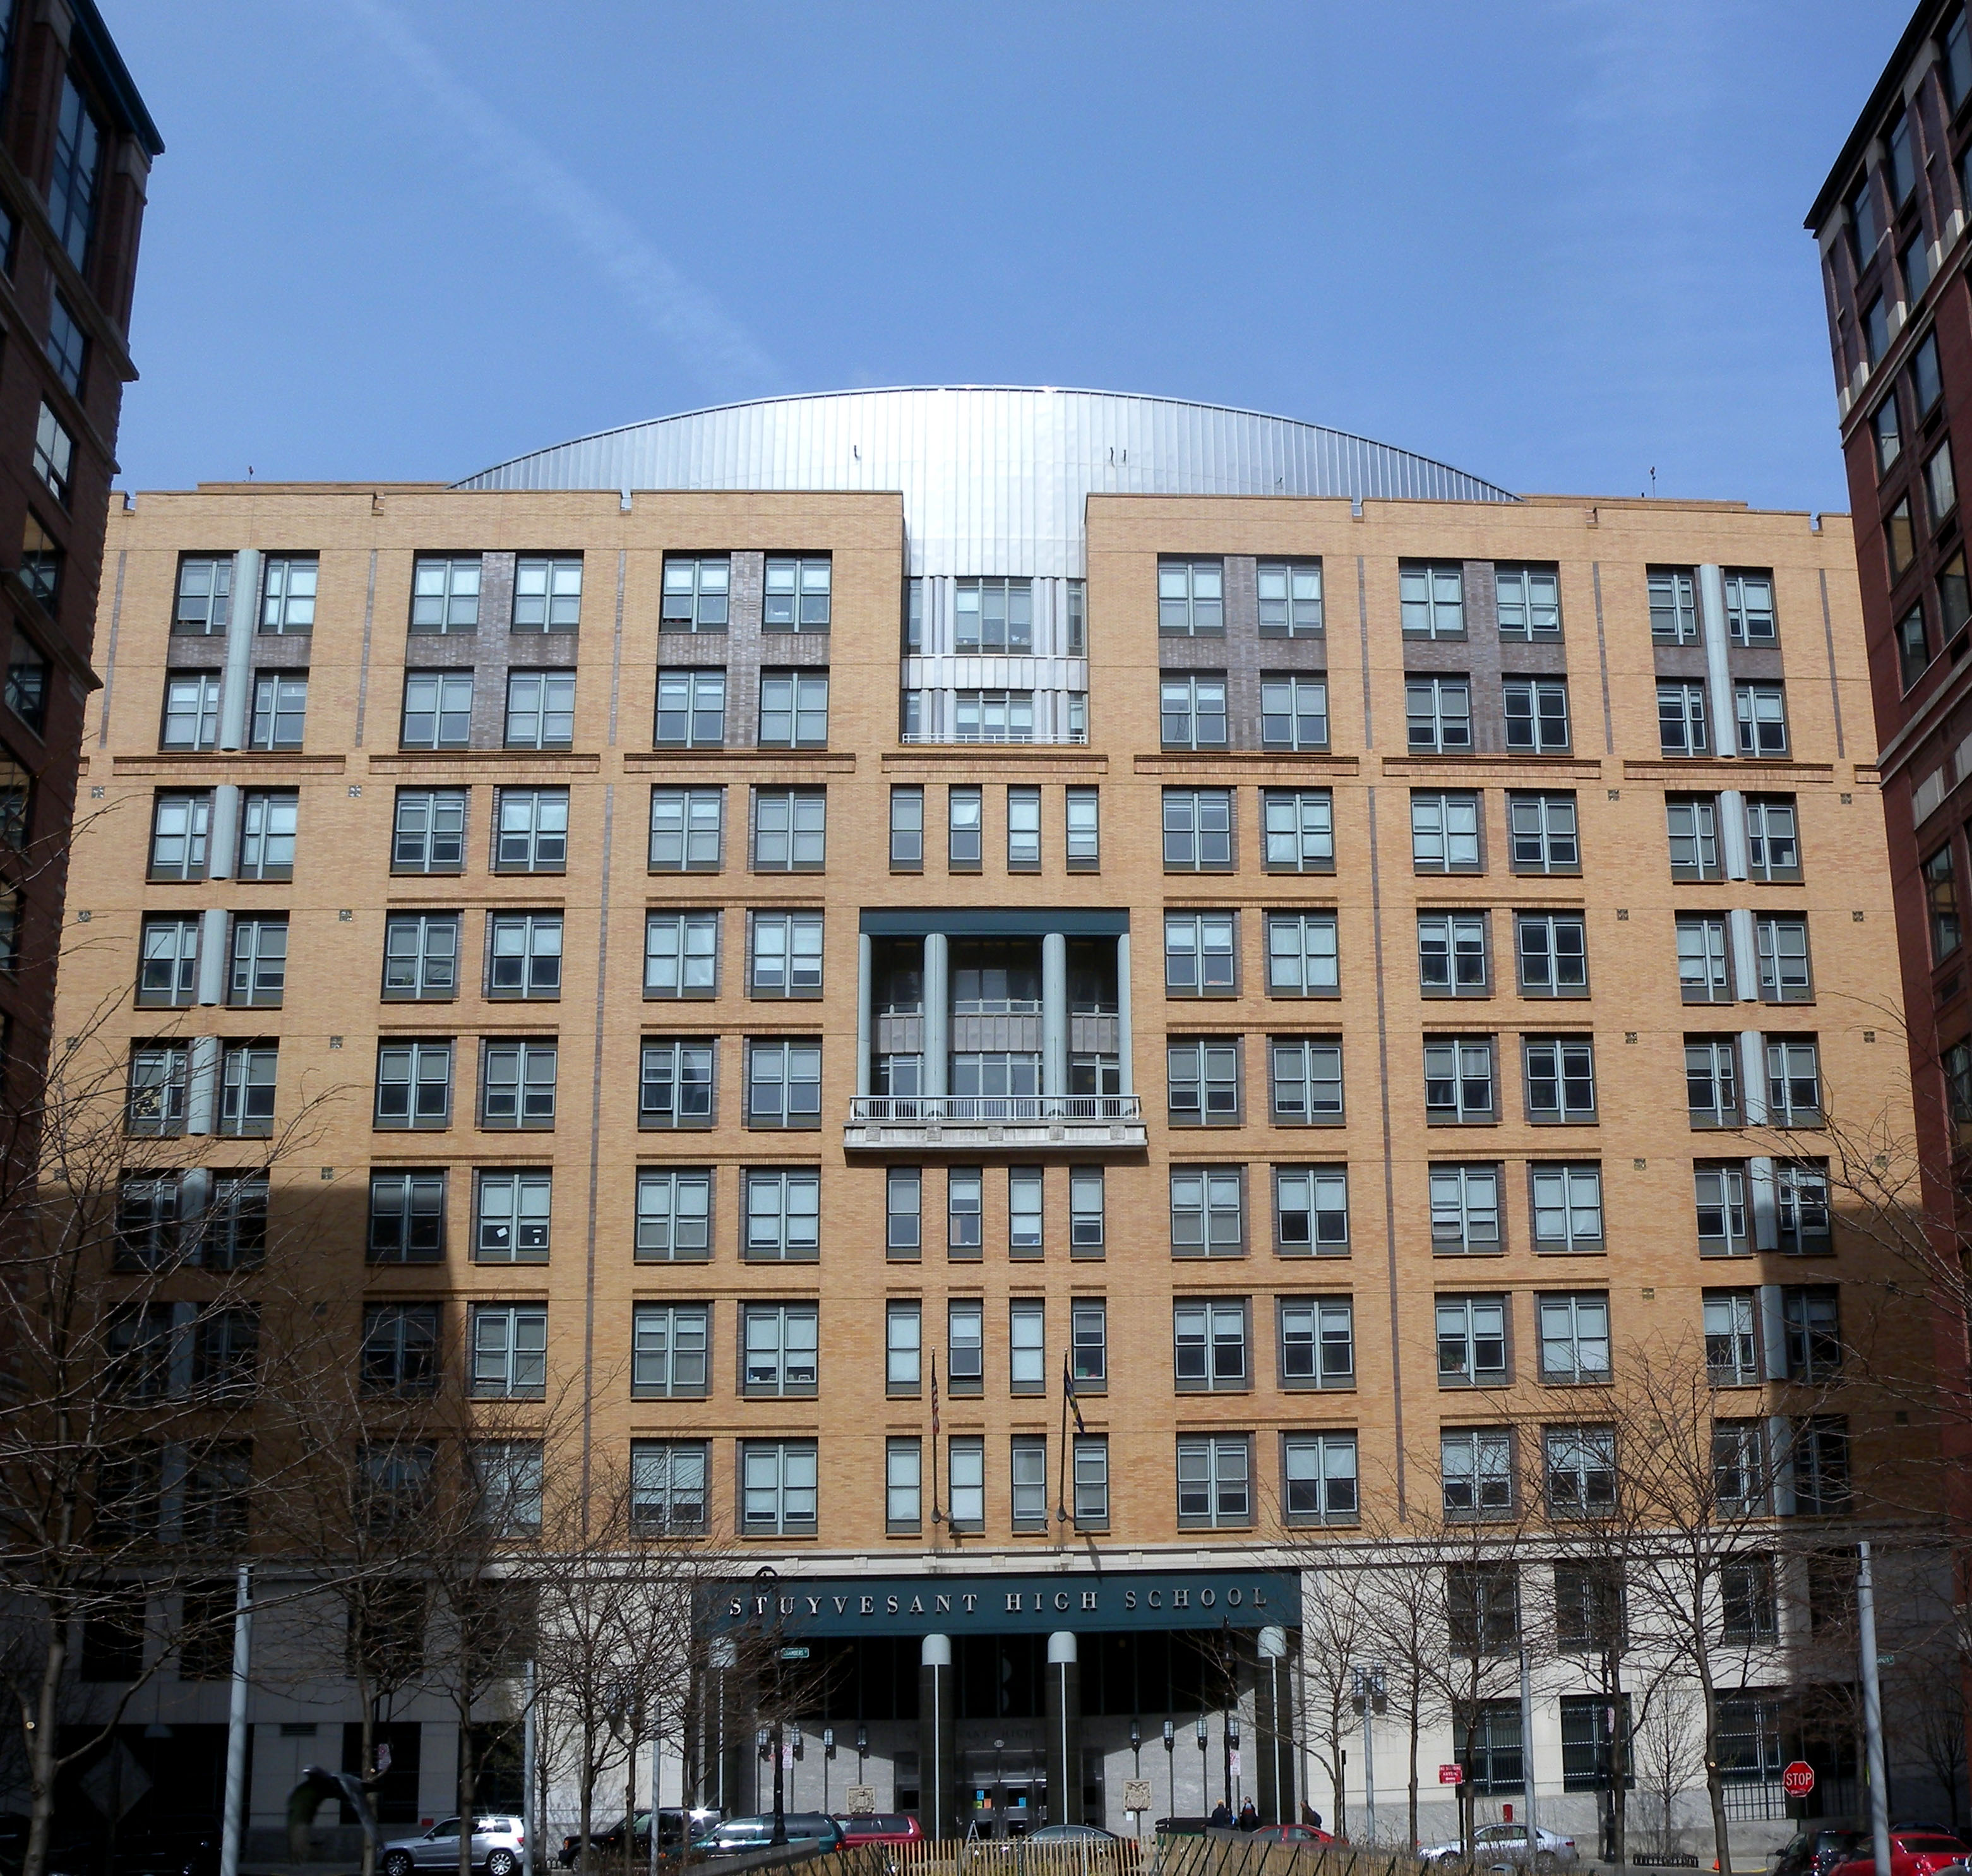 image of Stuyvesant High School